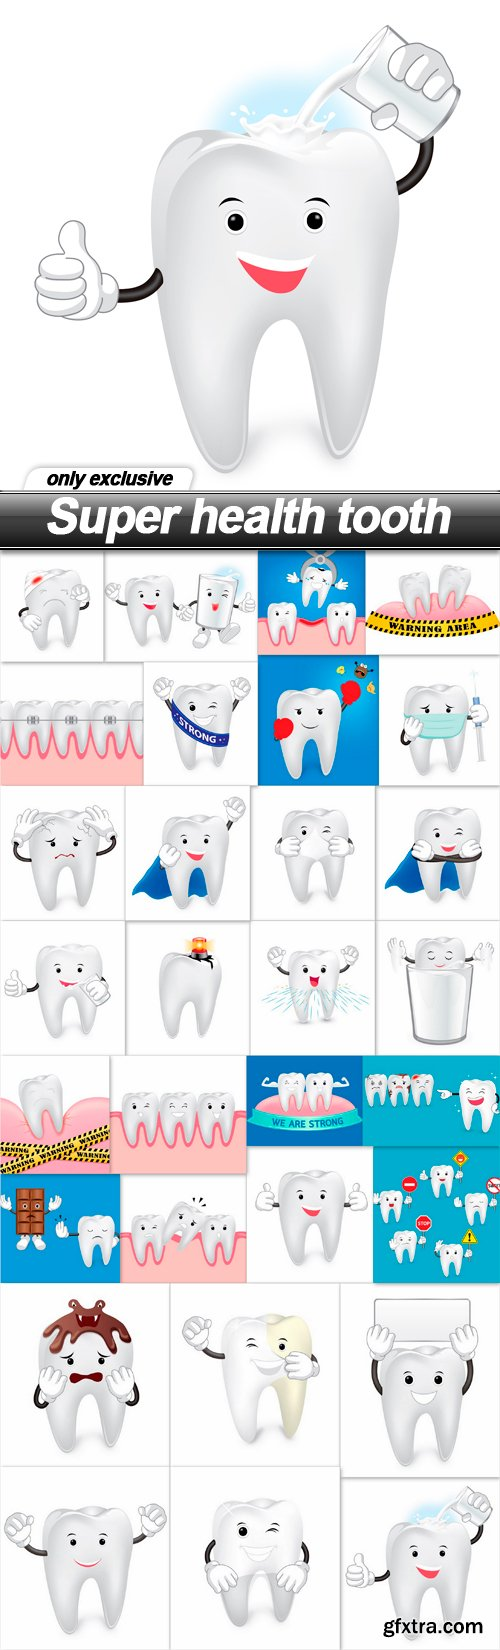 Super health tooth - 30 EPS